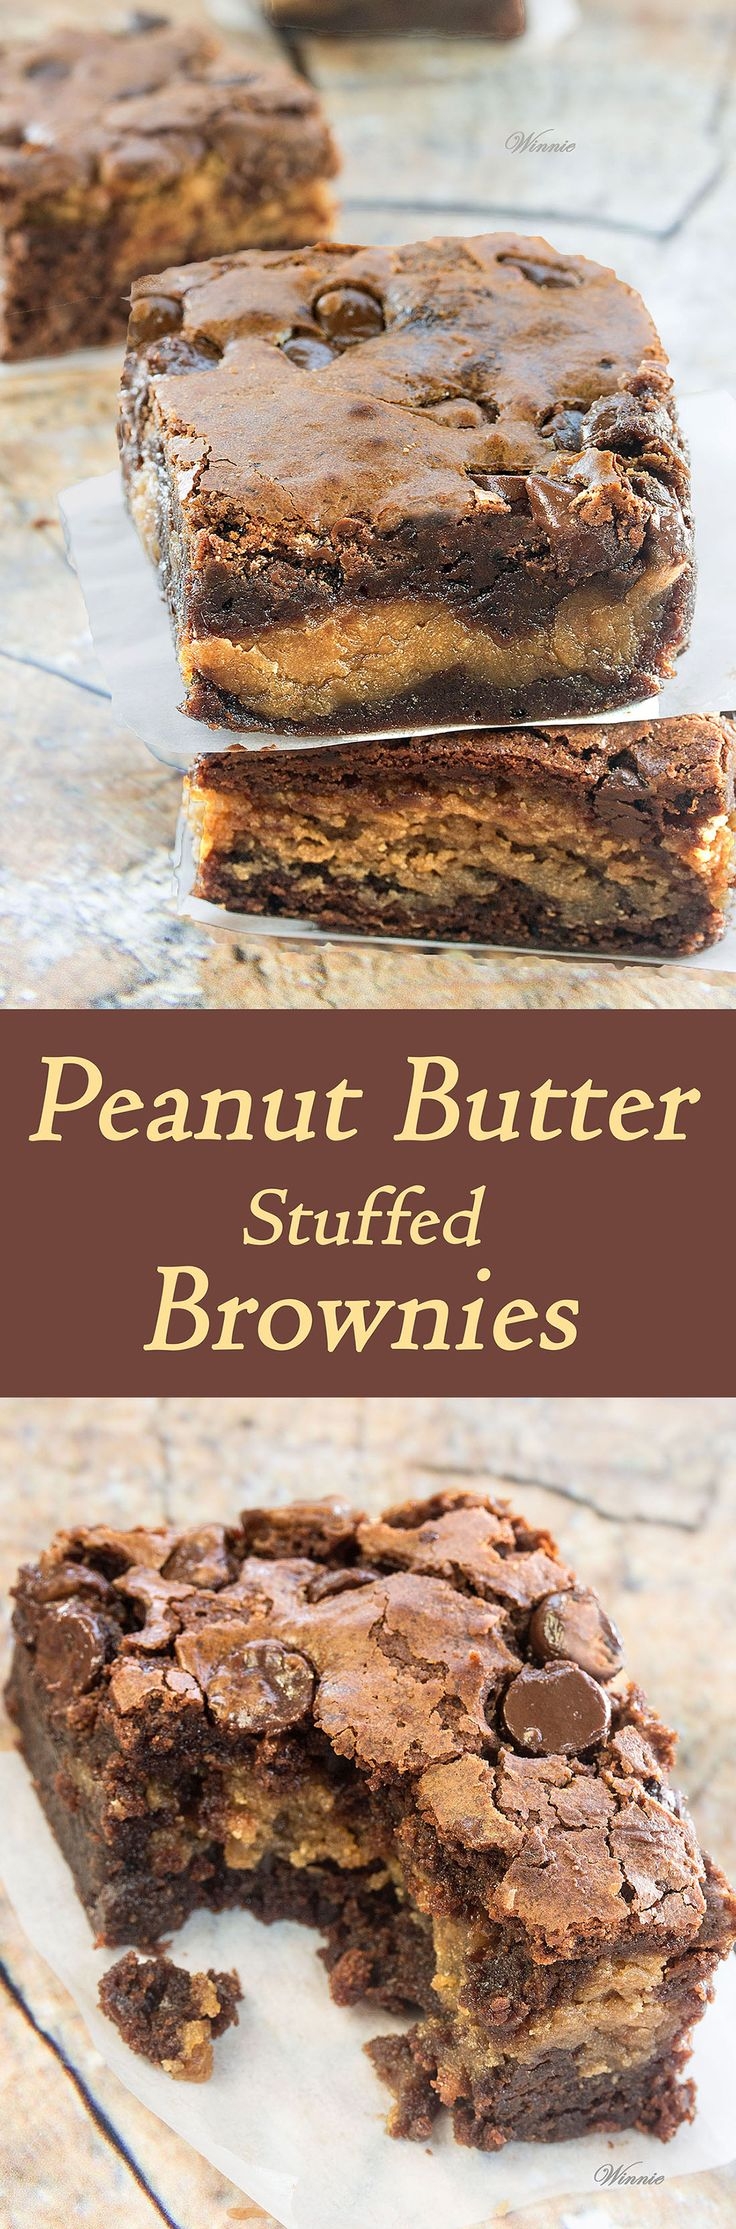 athletic shoes stores wilmington nc The most delicious treat   Peanut Butter Stuffed Brownies    http   www winnish net 2015 07 7210